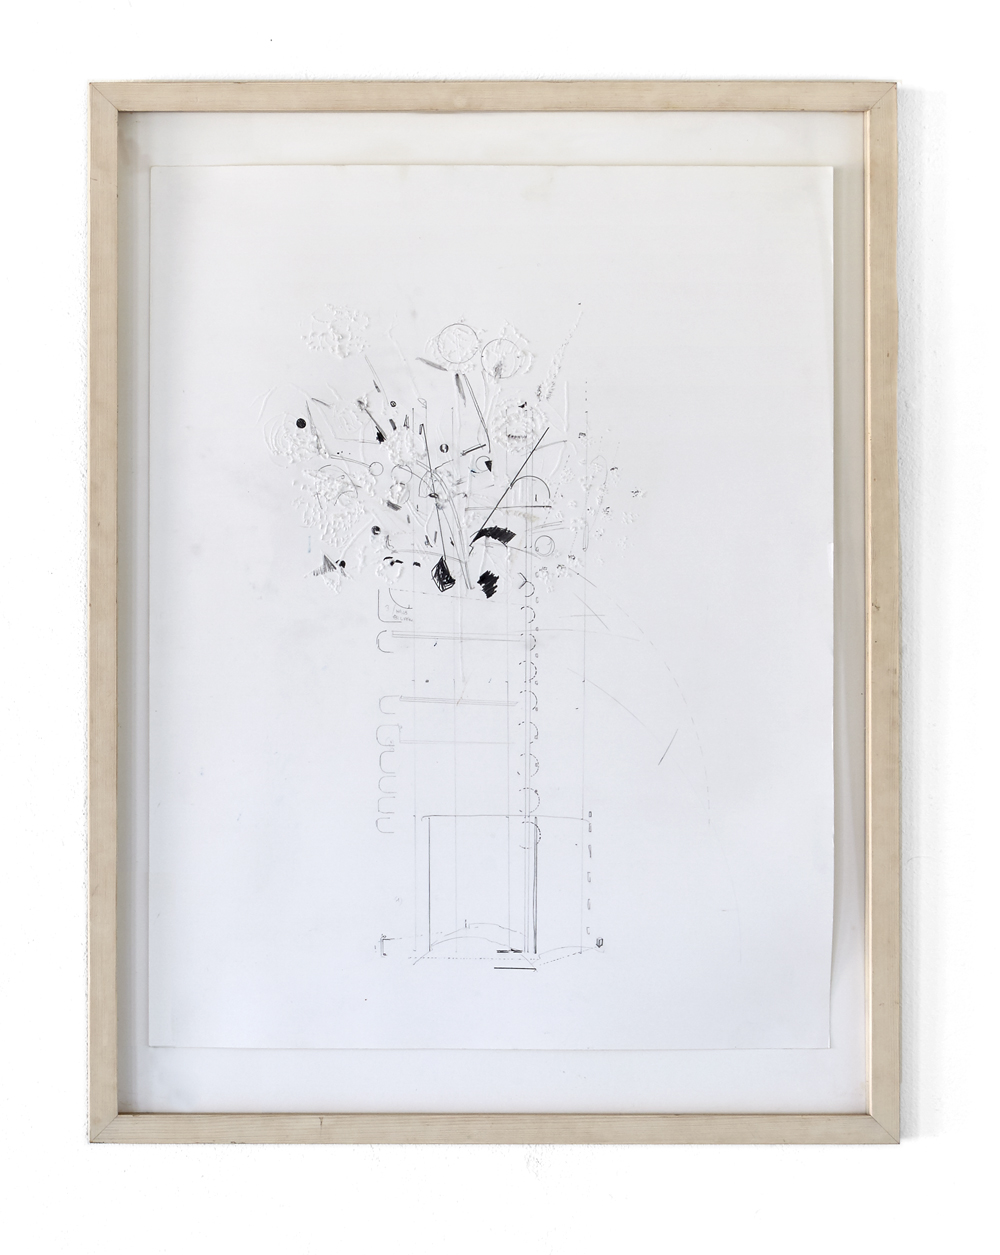 Karine Fauchard, Dead Flowers Bouquets #1, 2013, pencil and engraving on bristol paper, 65 x 50 cm, wooden frame